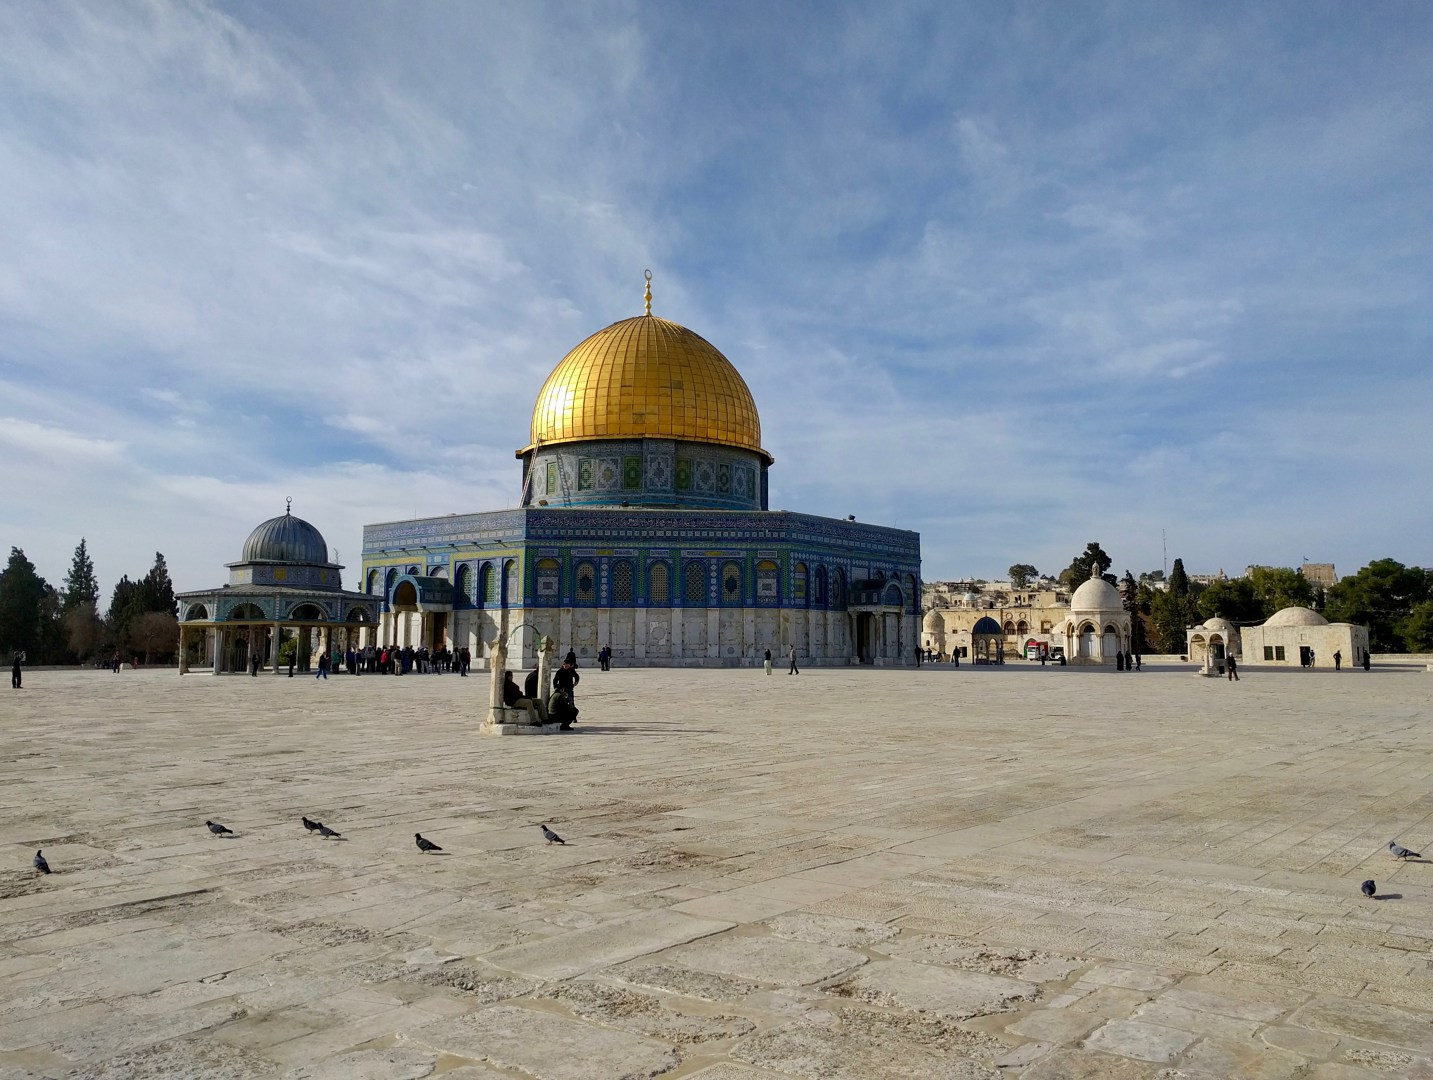 The Dome of the Rock on the Temple Mount